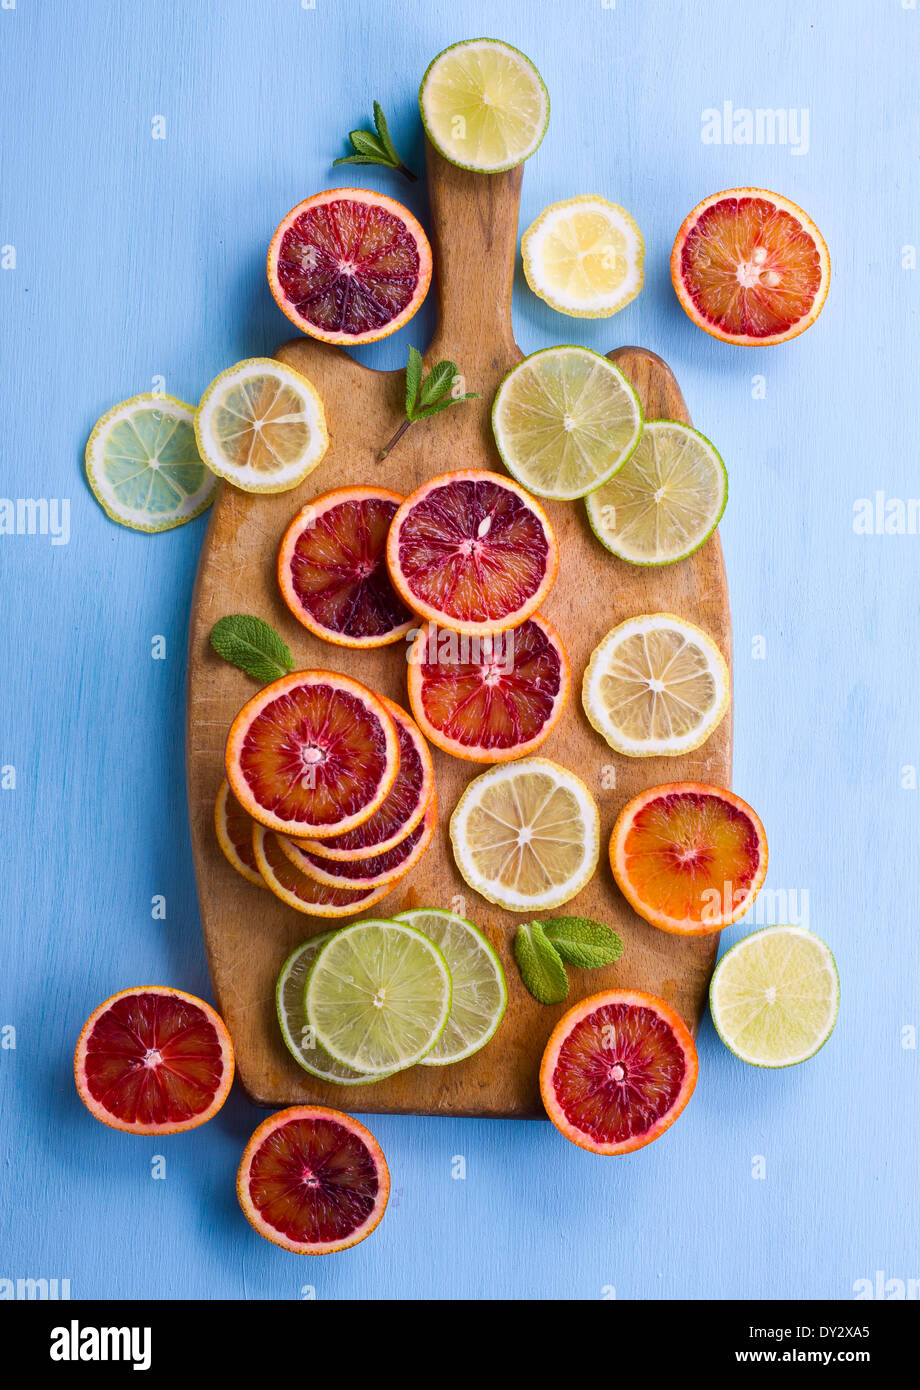 Assorted cut citrus fruits on cutting bord shot from above on light blue background - Stock Image